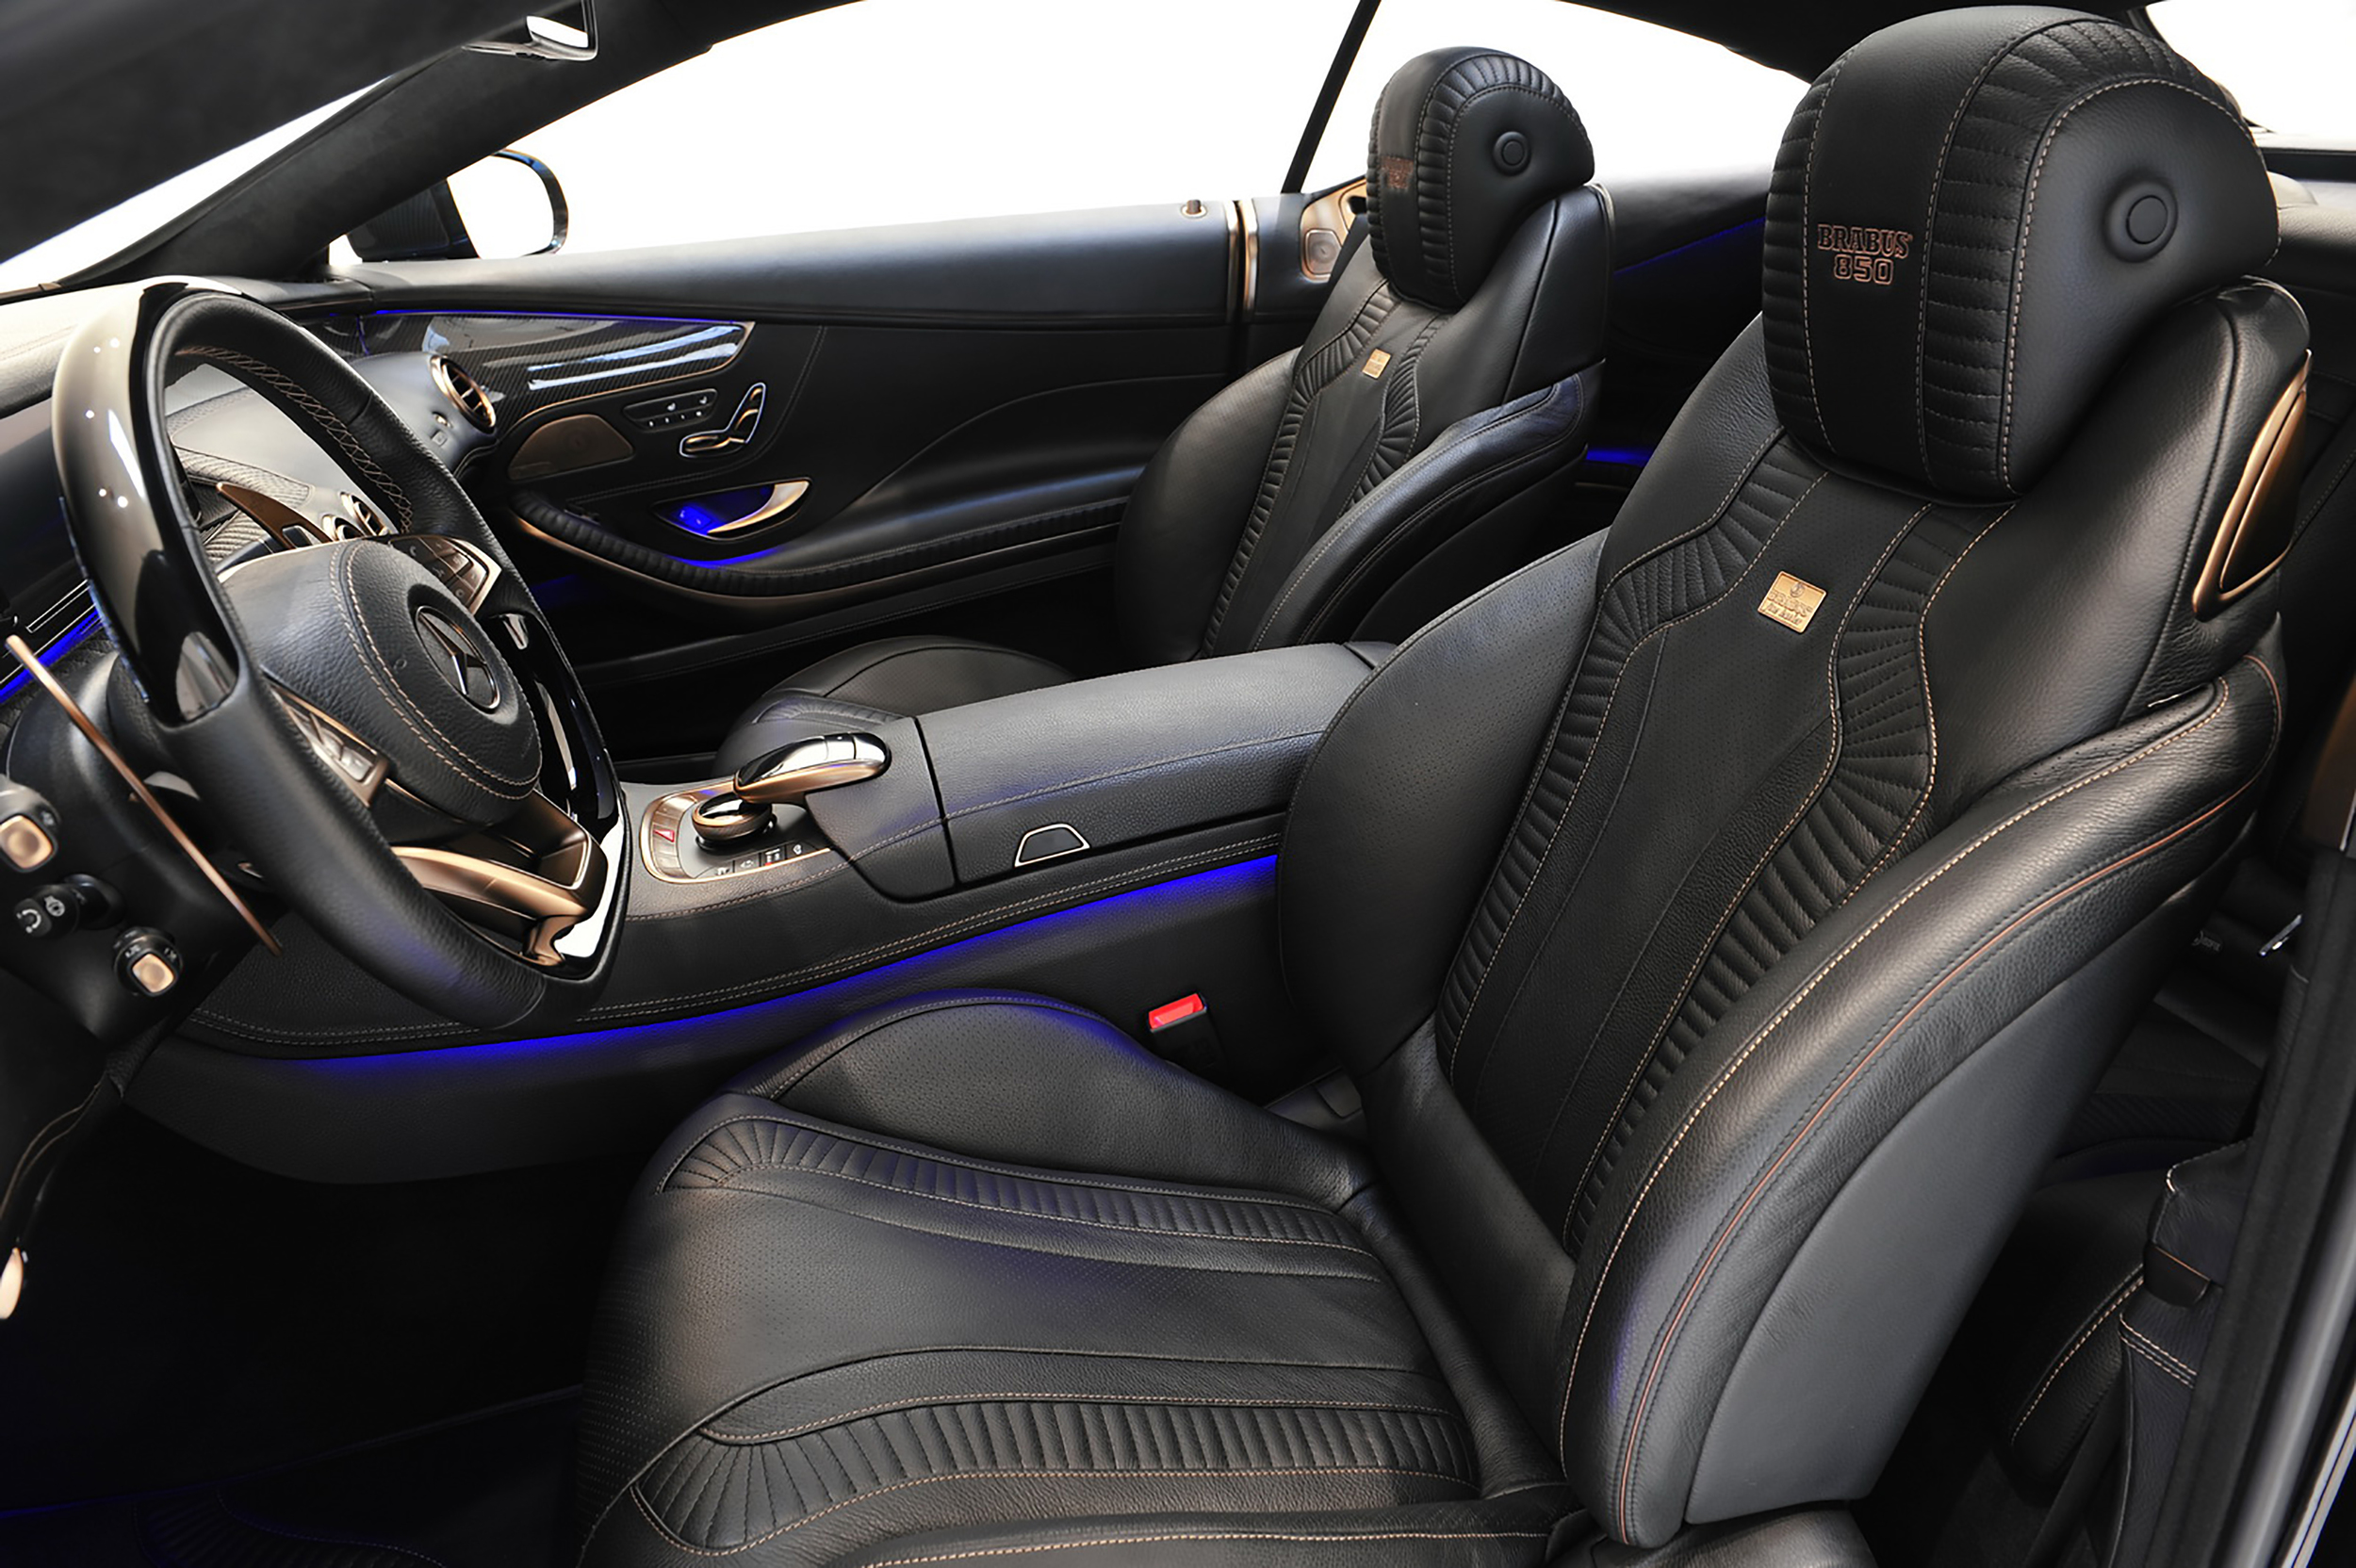 ' ' from the web at 'http://www.blogcdn.com/slideshows/images/slides/335/954/6/S3359546/slug/l/brabus-s-class-coupe-31-1.jpg'